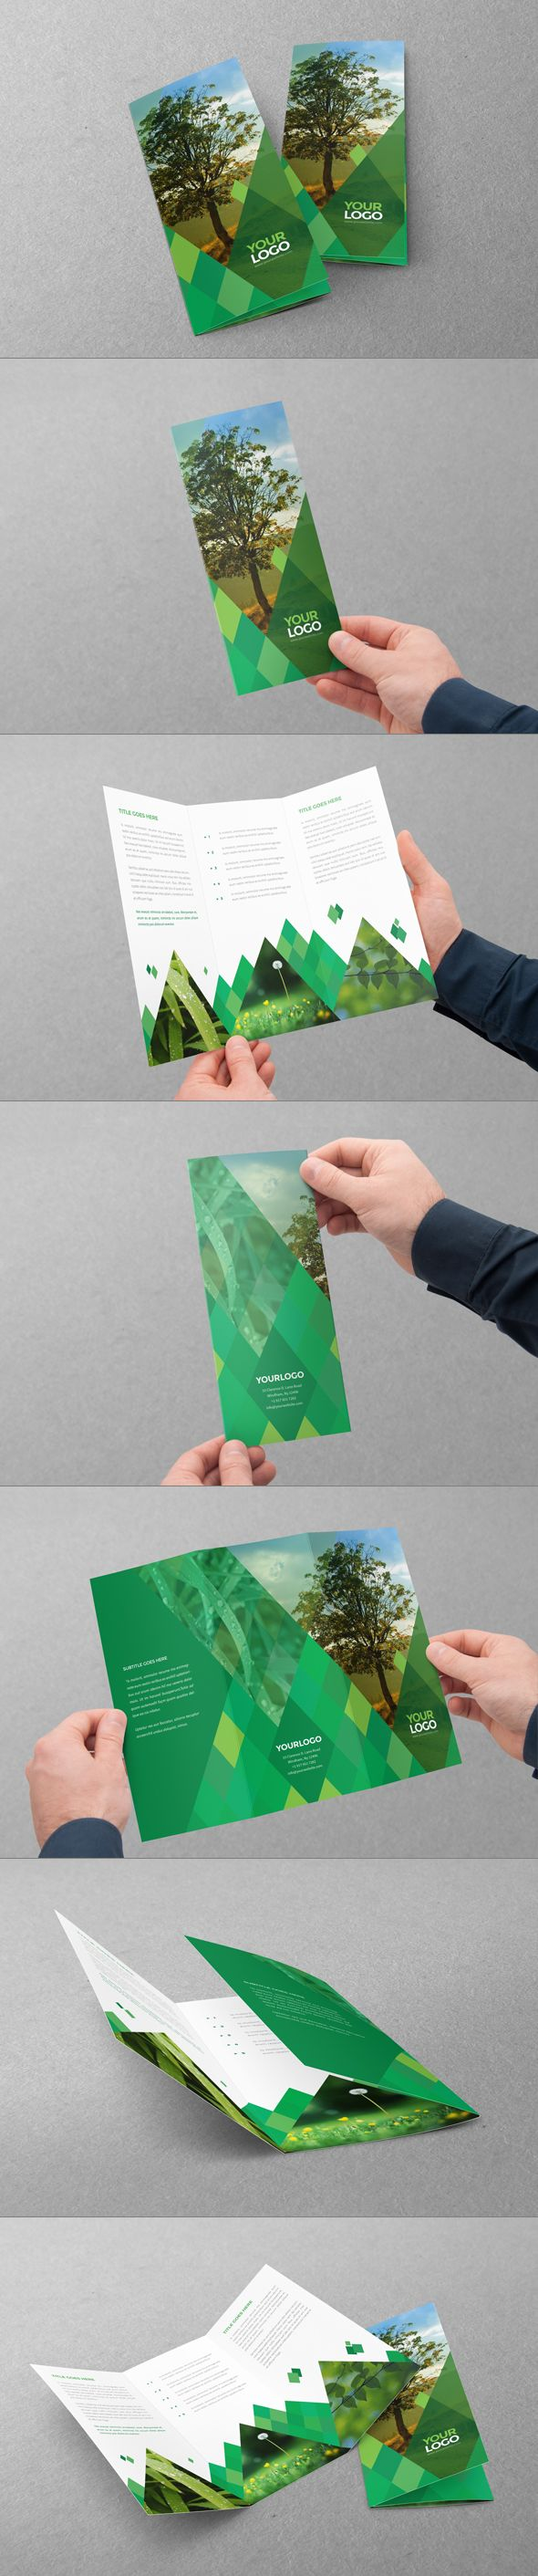 Green Diamonds Trifold. Download here: http://graphicriver.net/item/green-diamonds-trifold/7438199?ref=abradesign #design #trifold #brochure